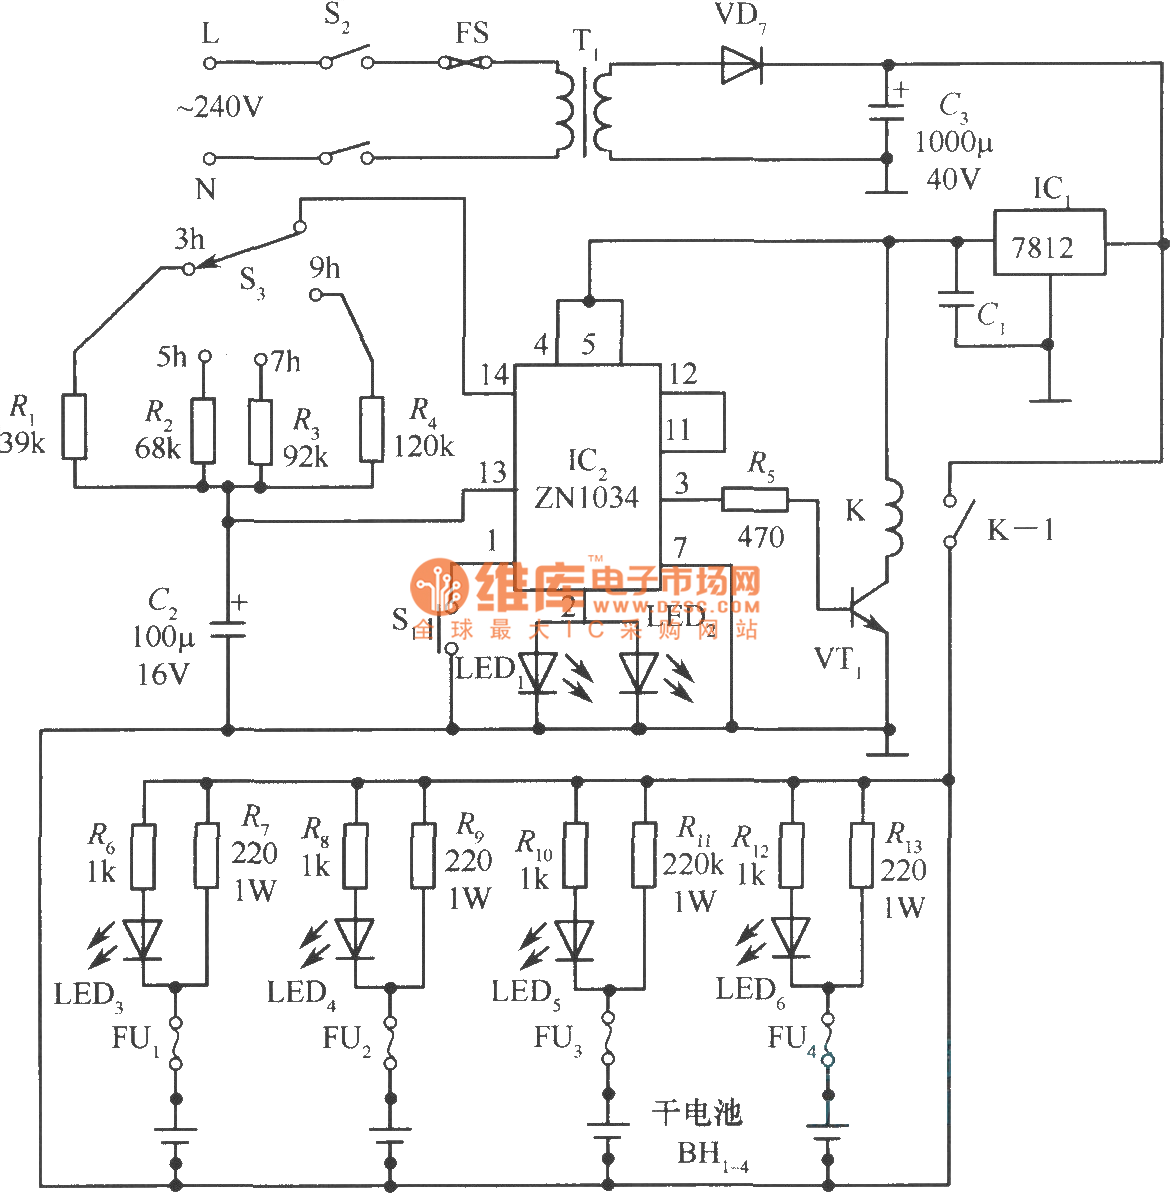 201141974552600 diagrams 620470 computer power supply wiring diagram power schumacher battery charger se 4020 wiring diagram at crackthecode.co